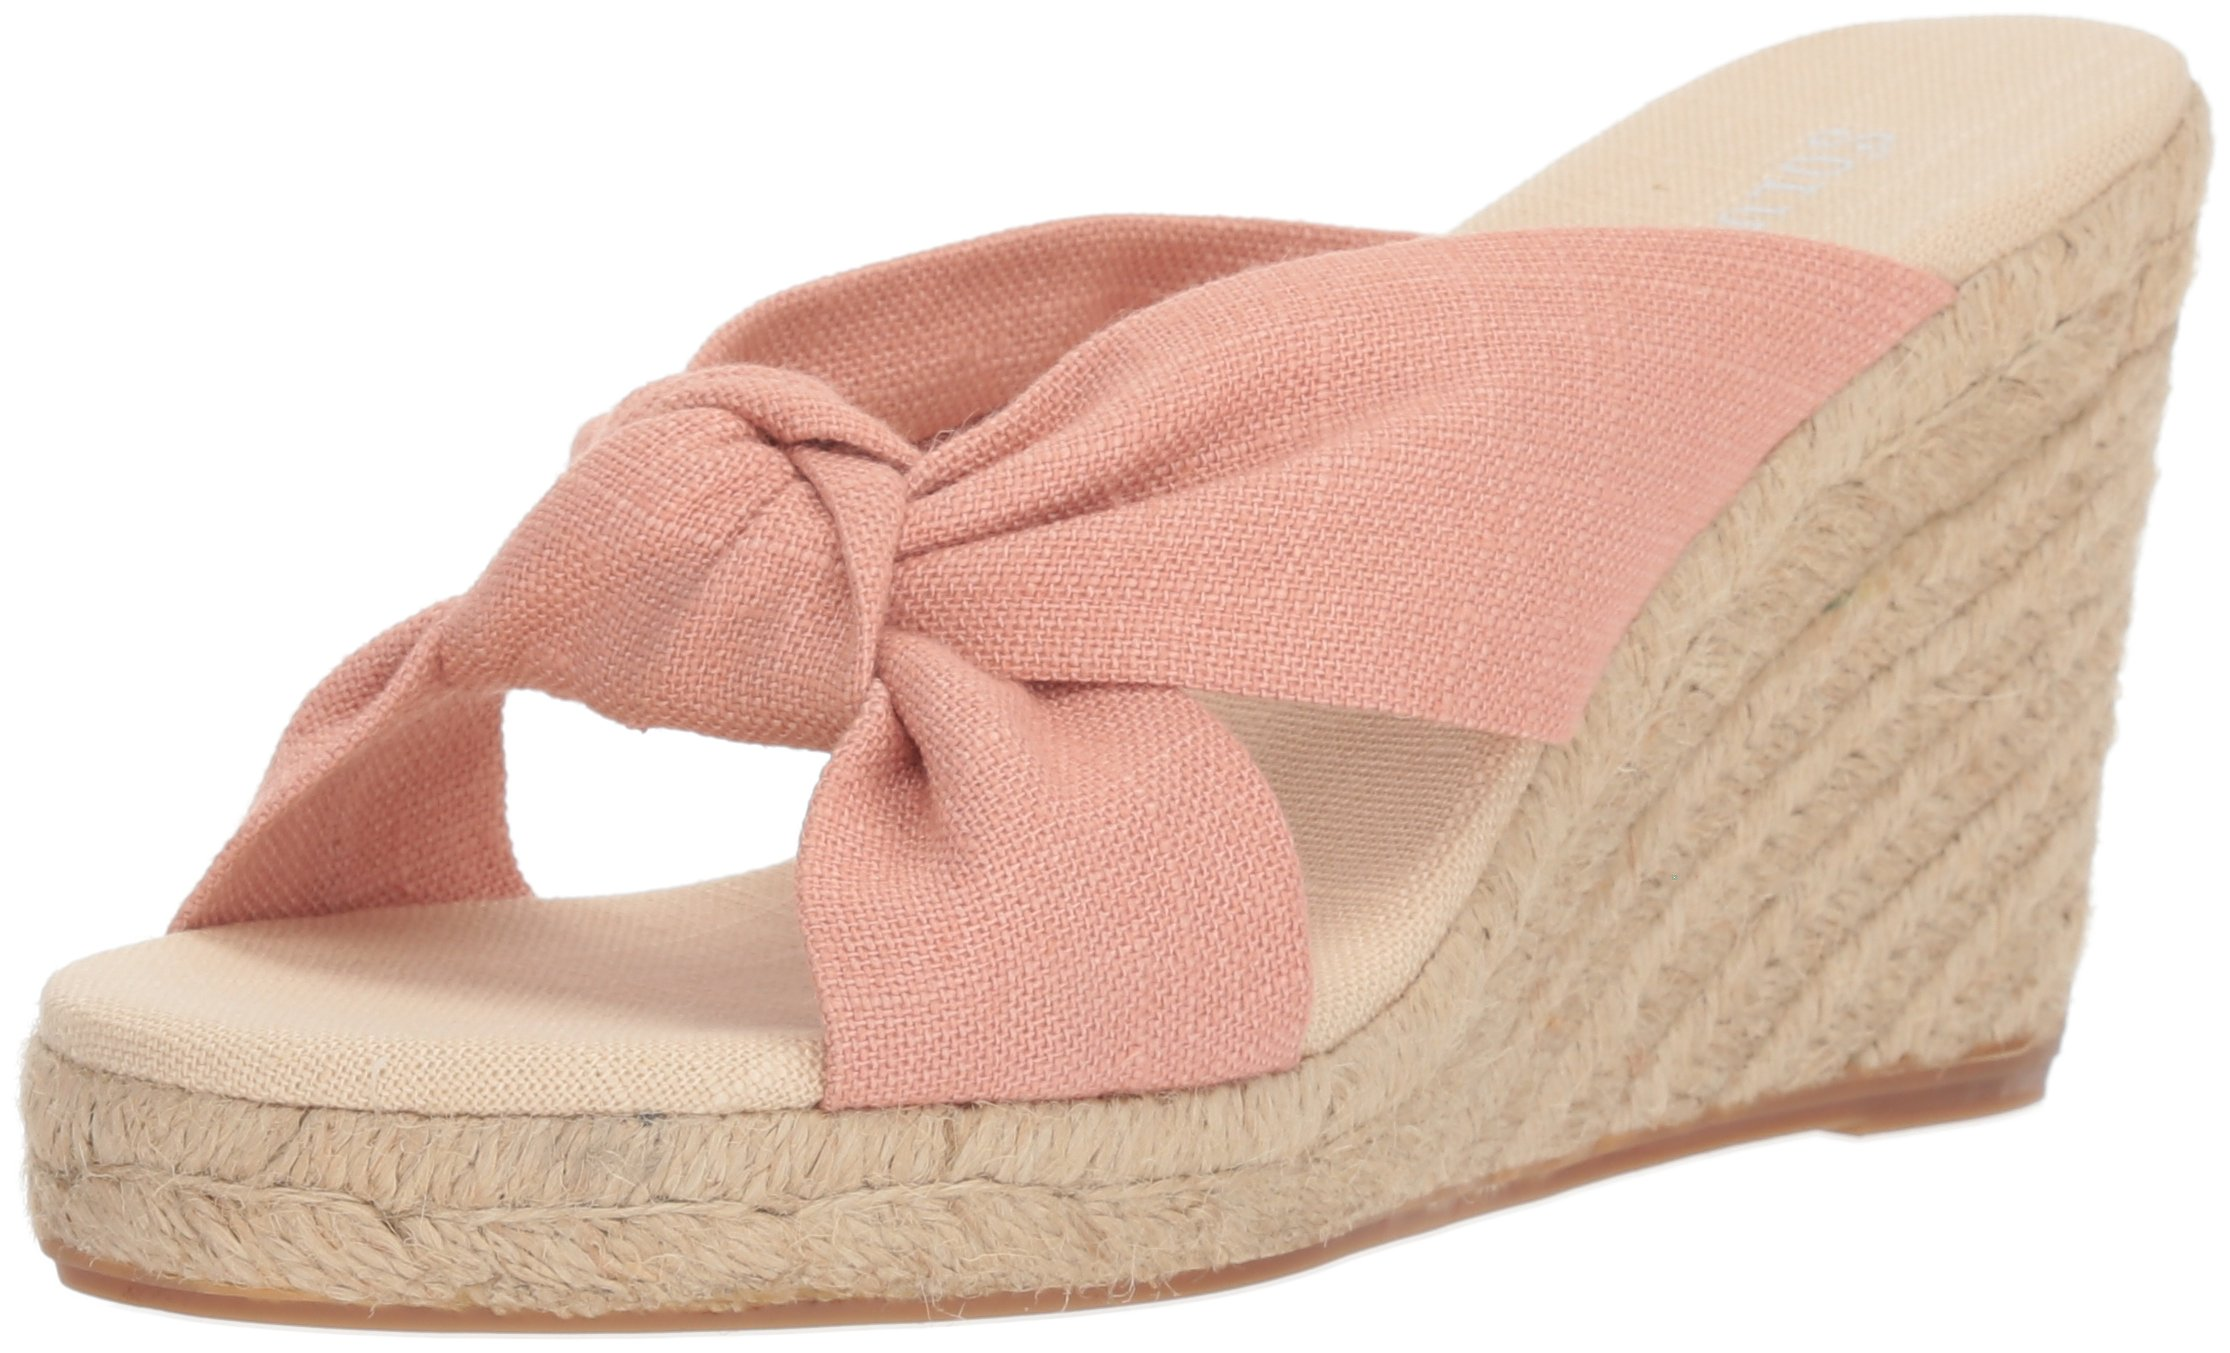 Soludos Women's Knotted (90mm) Espadrille Wedge Sandal, Dusty Rose, 8 Regular US